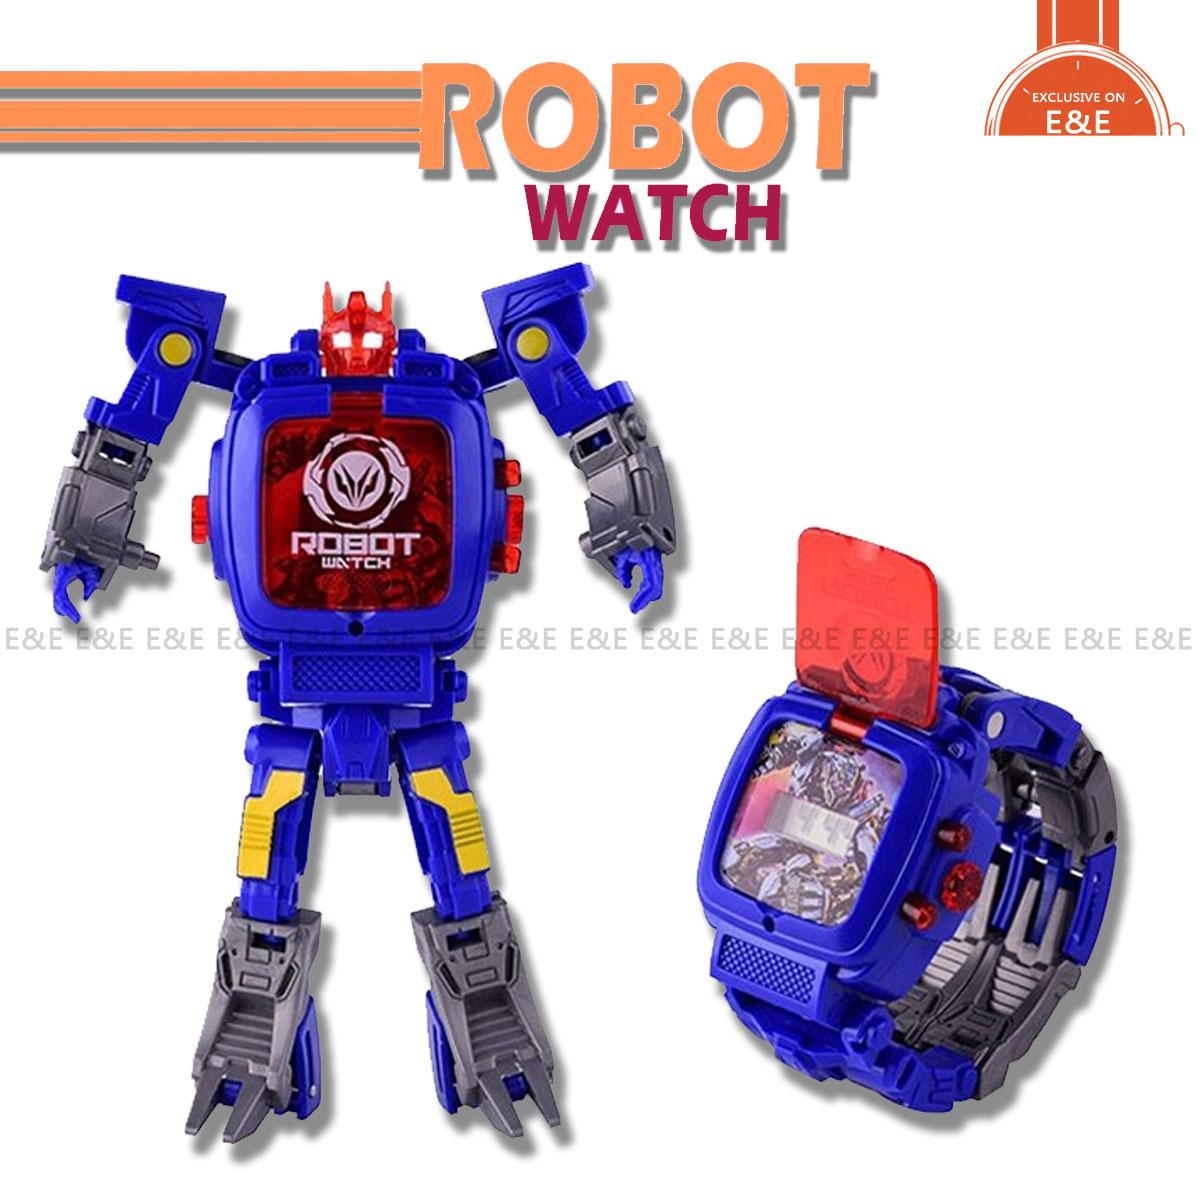 E&E Transforming Robot Watch Toys LED digital Watch 2 in 1